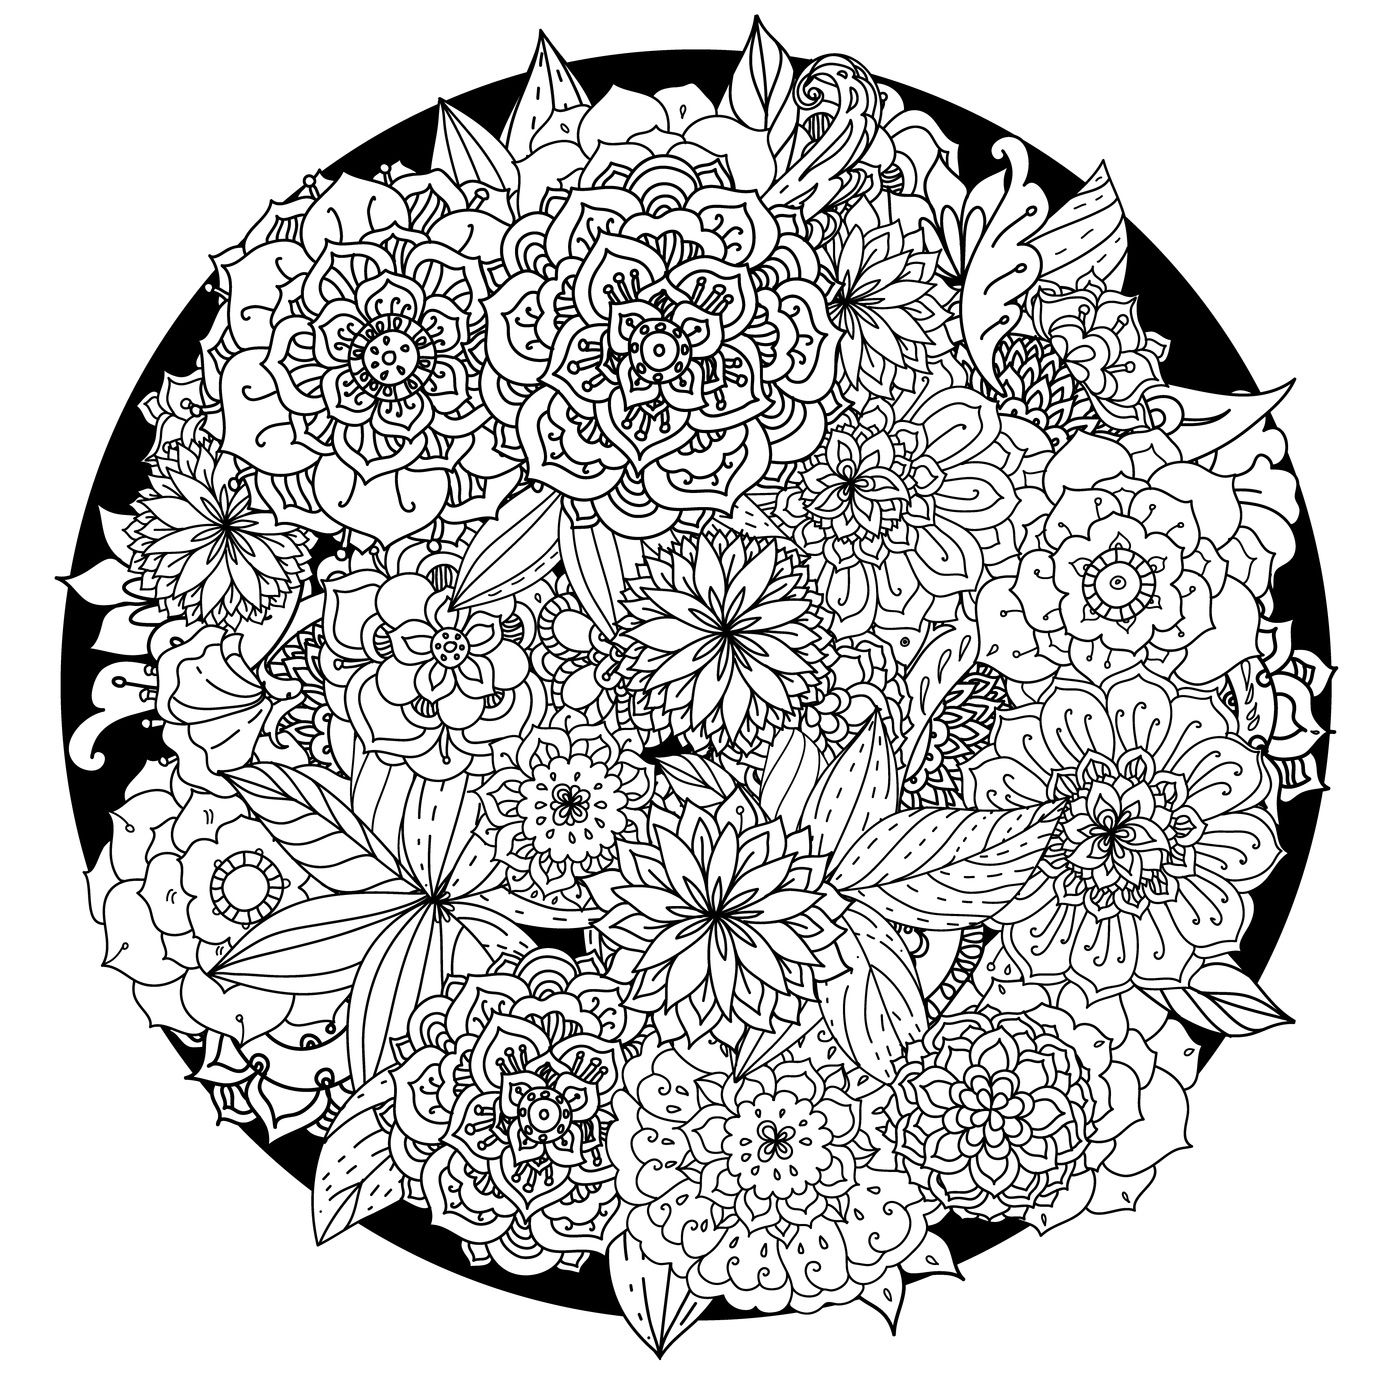 Free coloring pages for adults abstract - These Printable Abstract Coloring Pages Relieve Stress And Help You Meditate